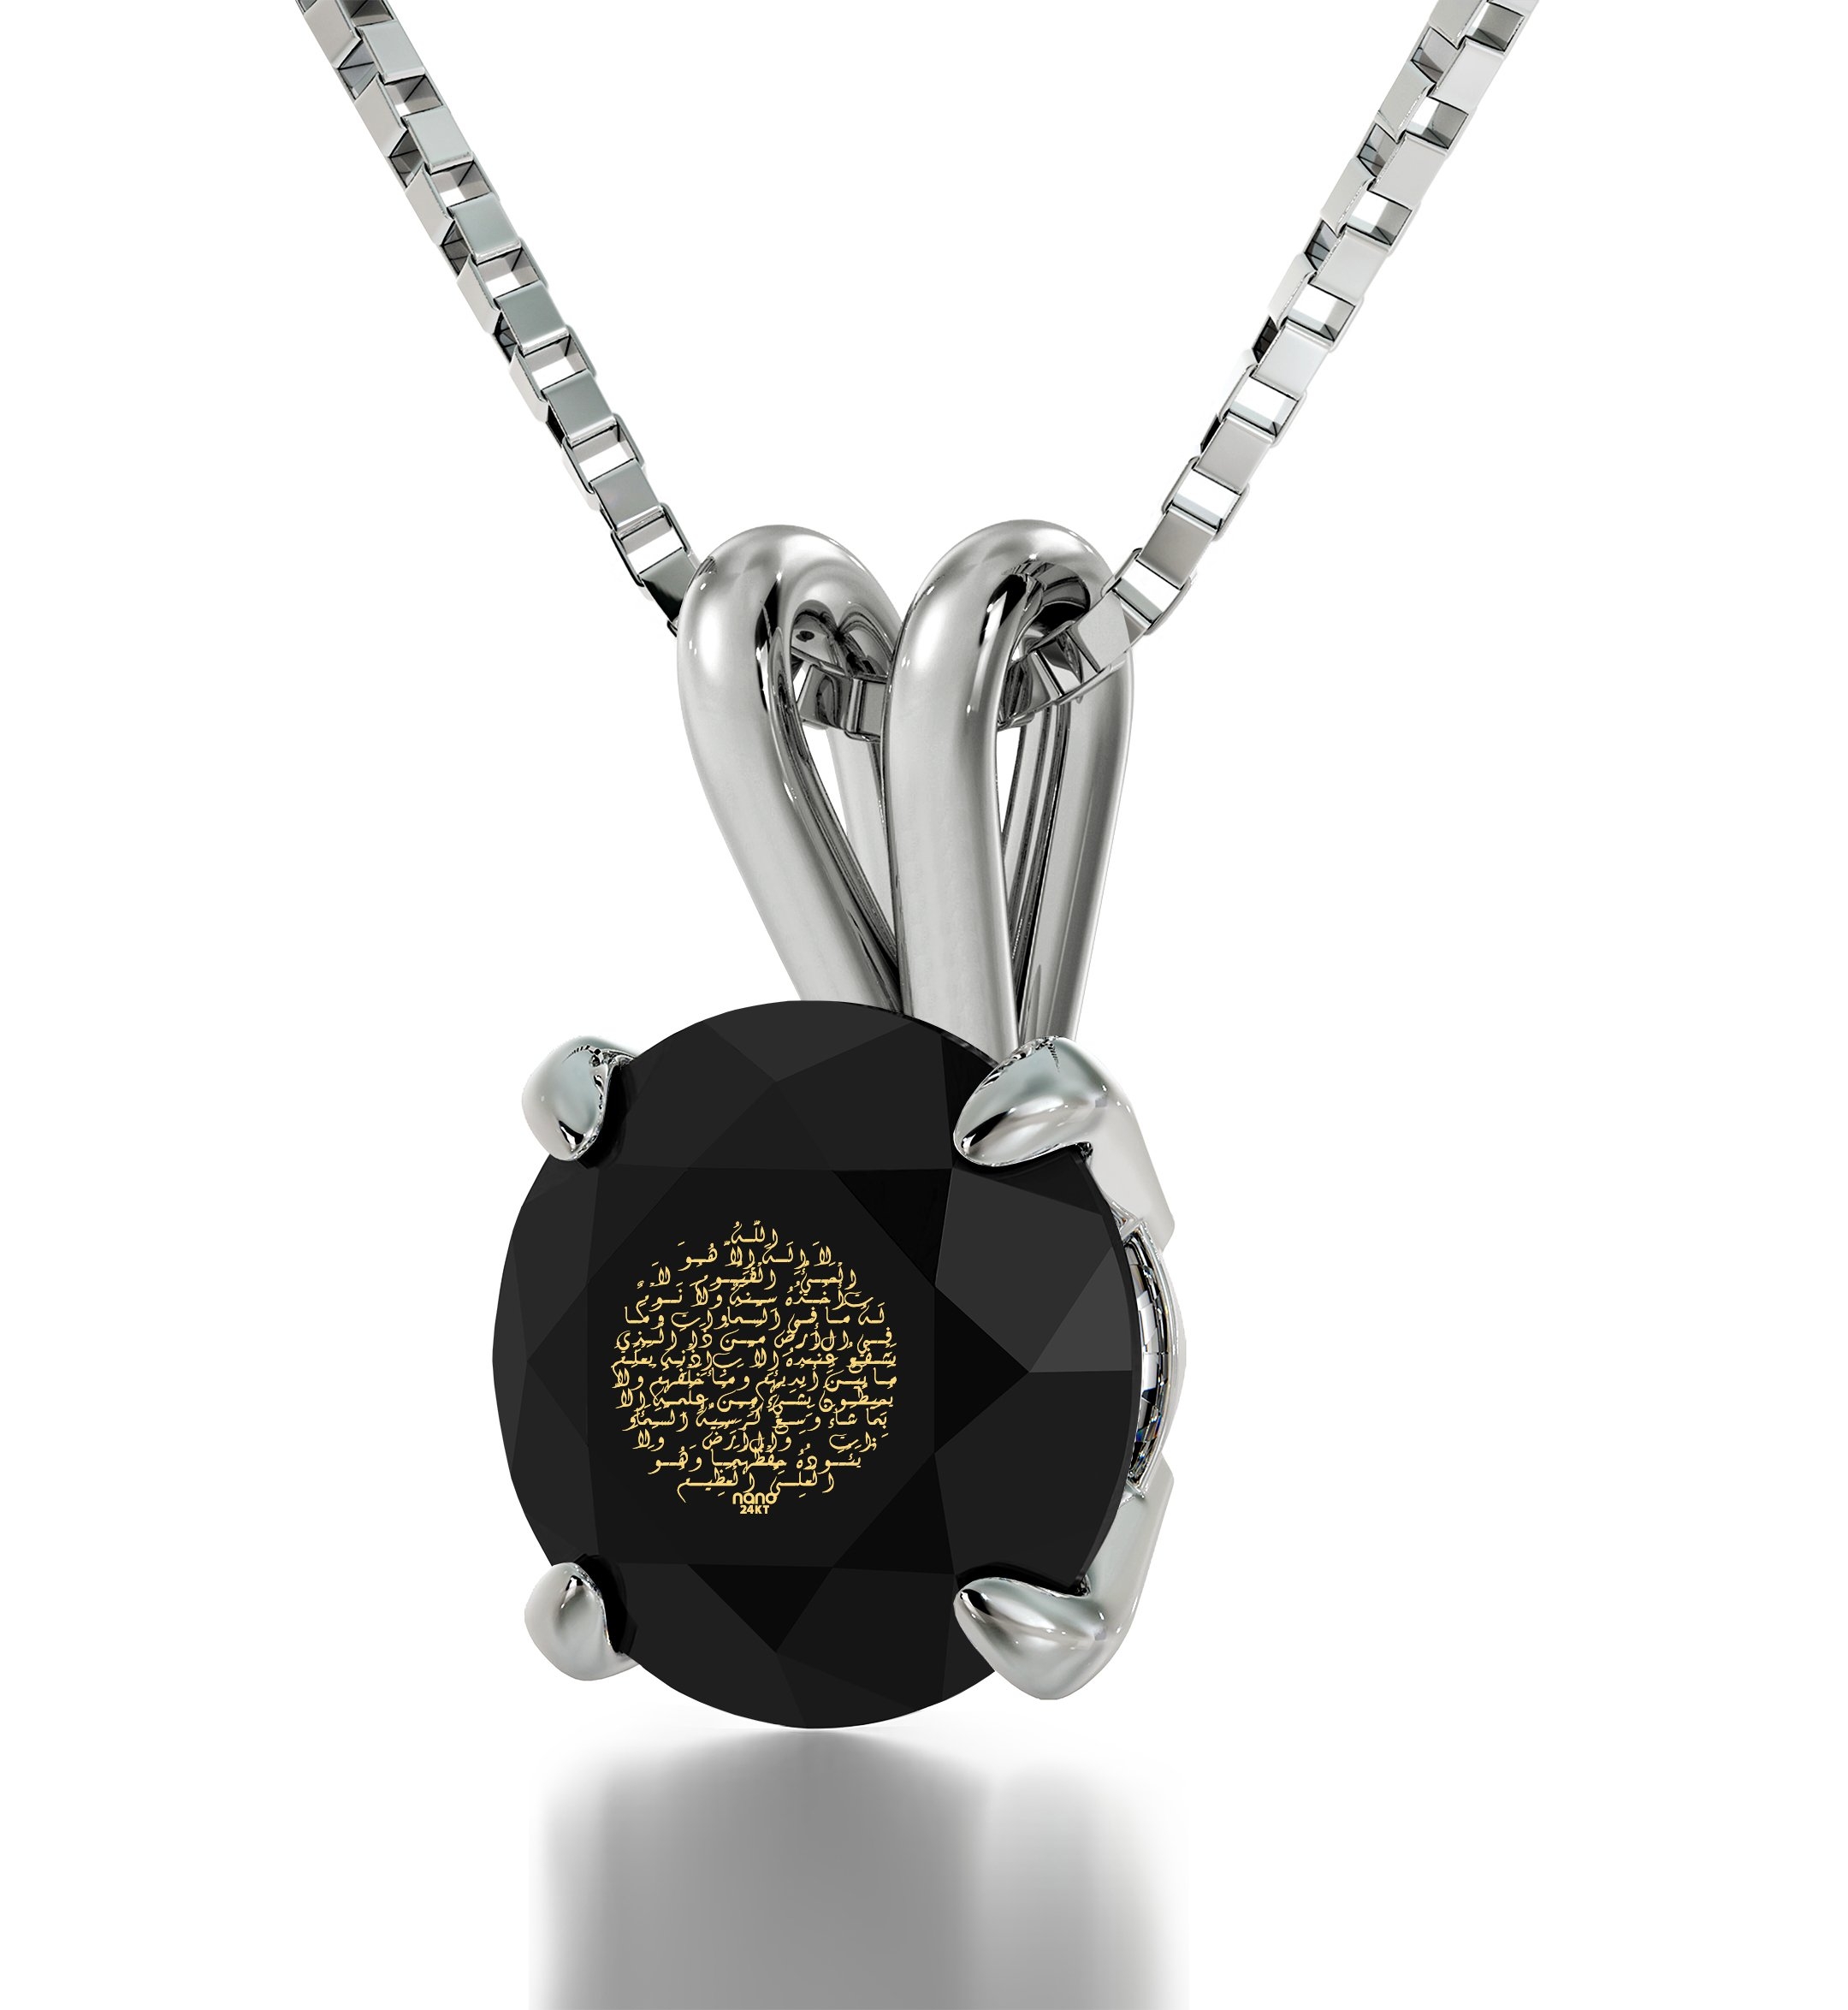 925 Sterling Silver Arabic Necklace Islamic Ayatul Kursi Inscribed in 24kt Gold on Black Crystal, 18''